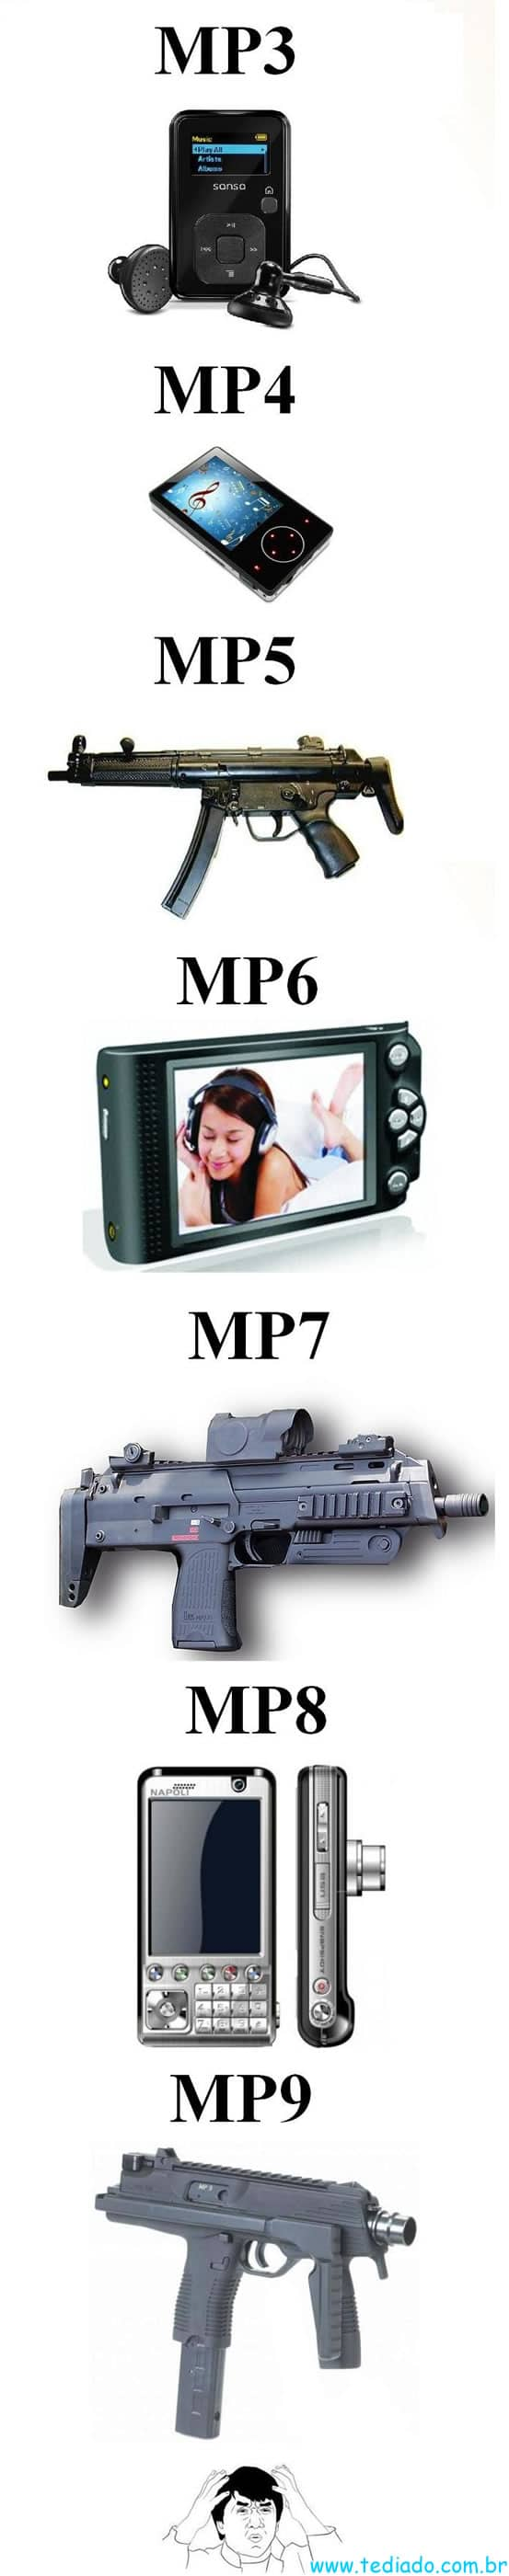 Evolução do MP 4